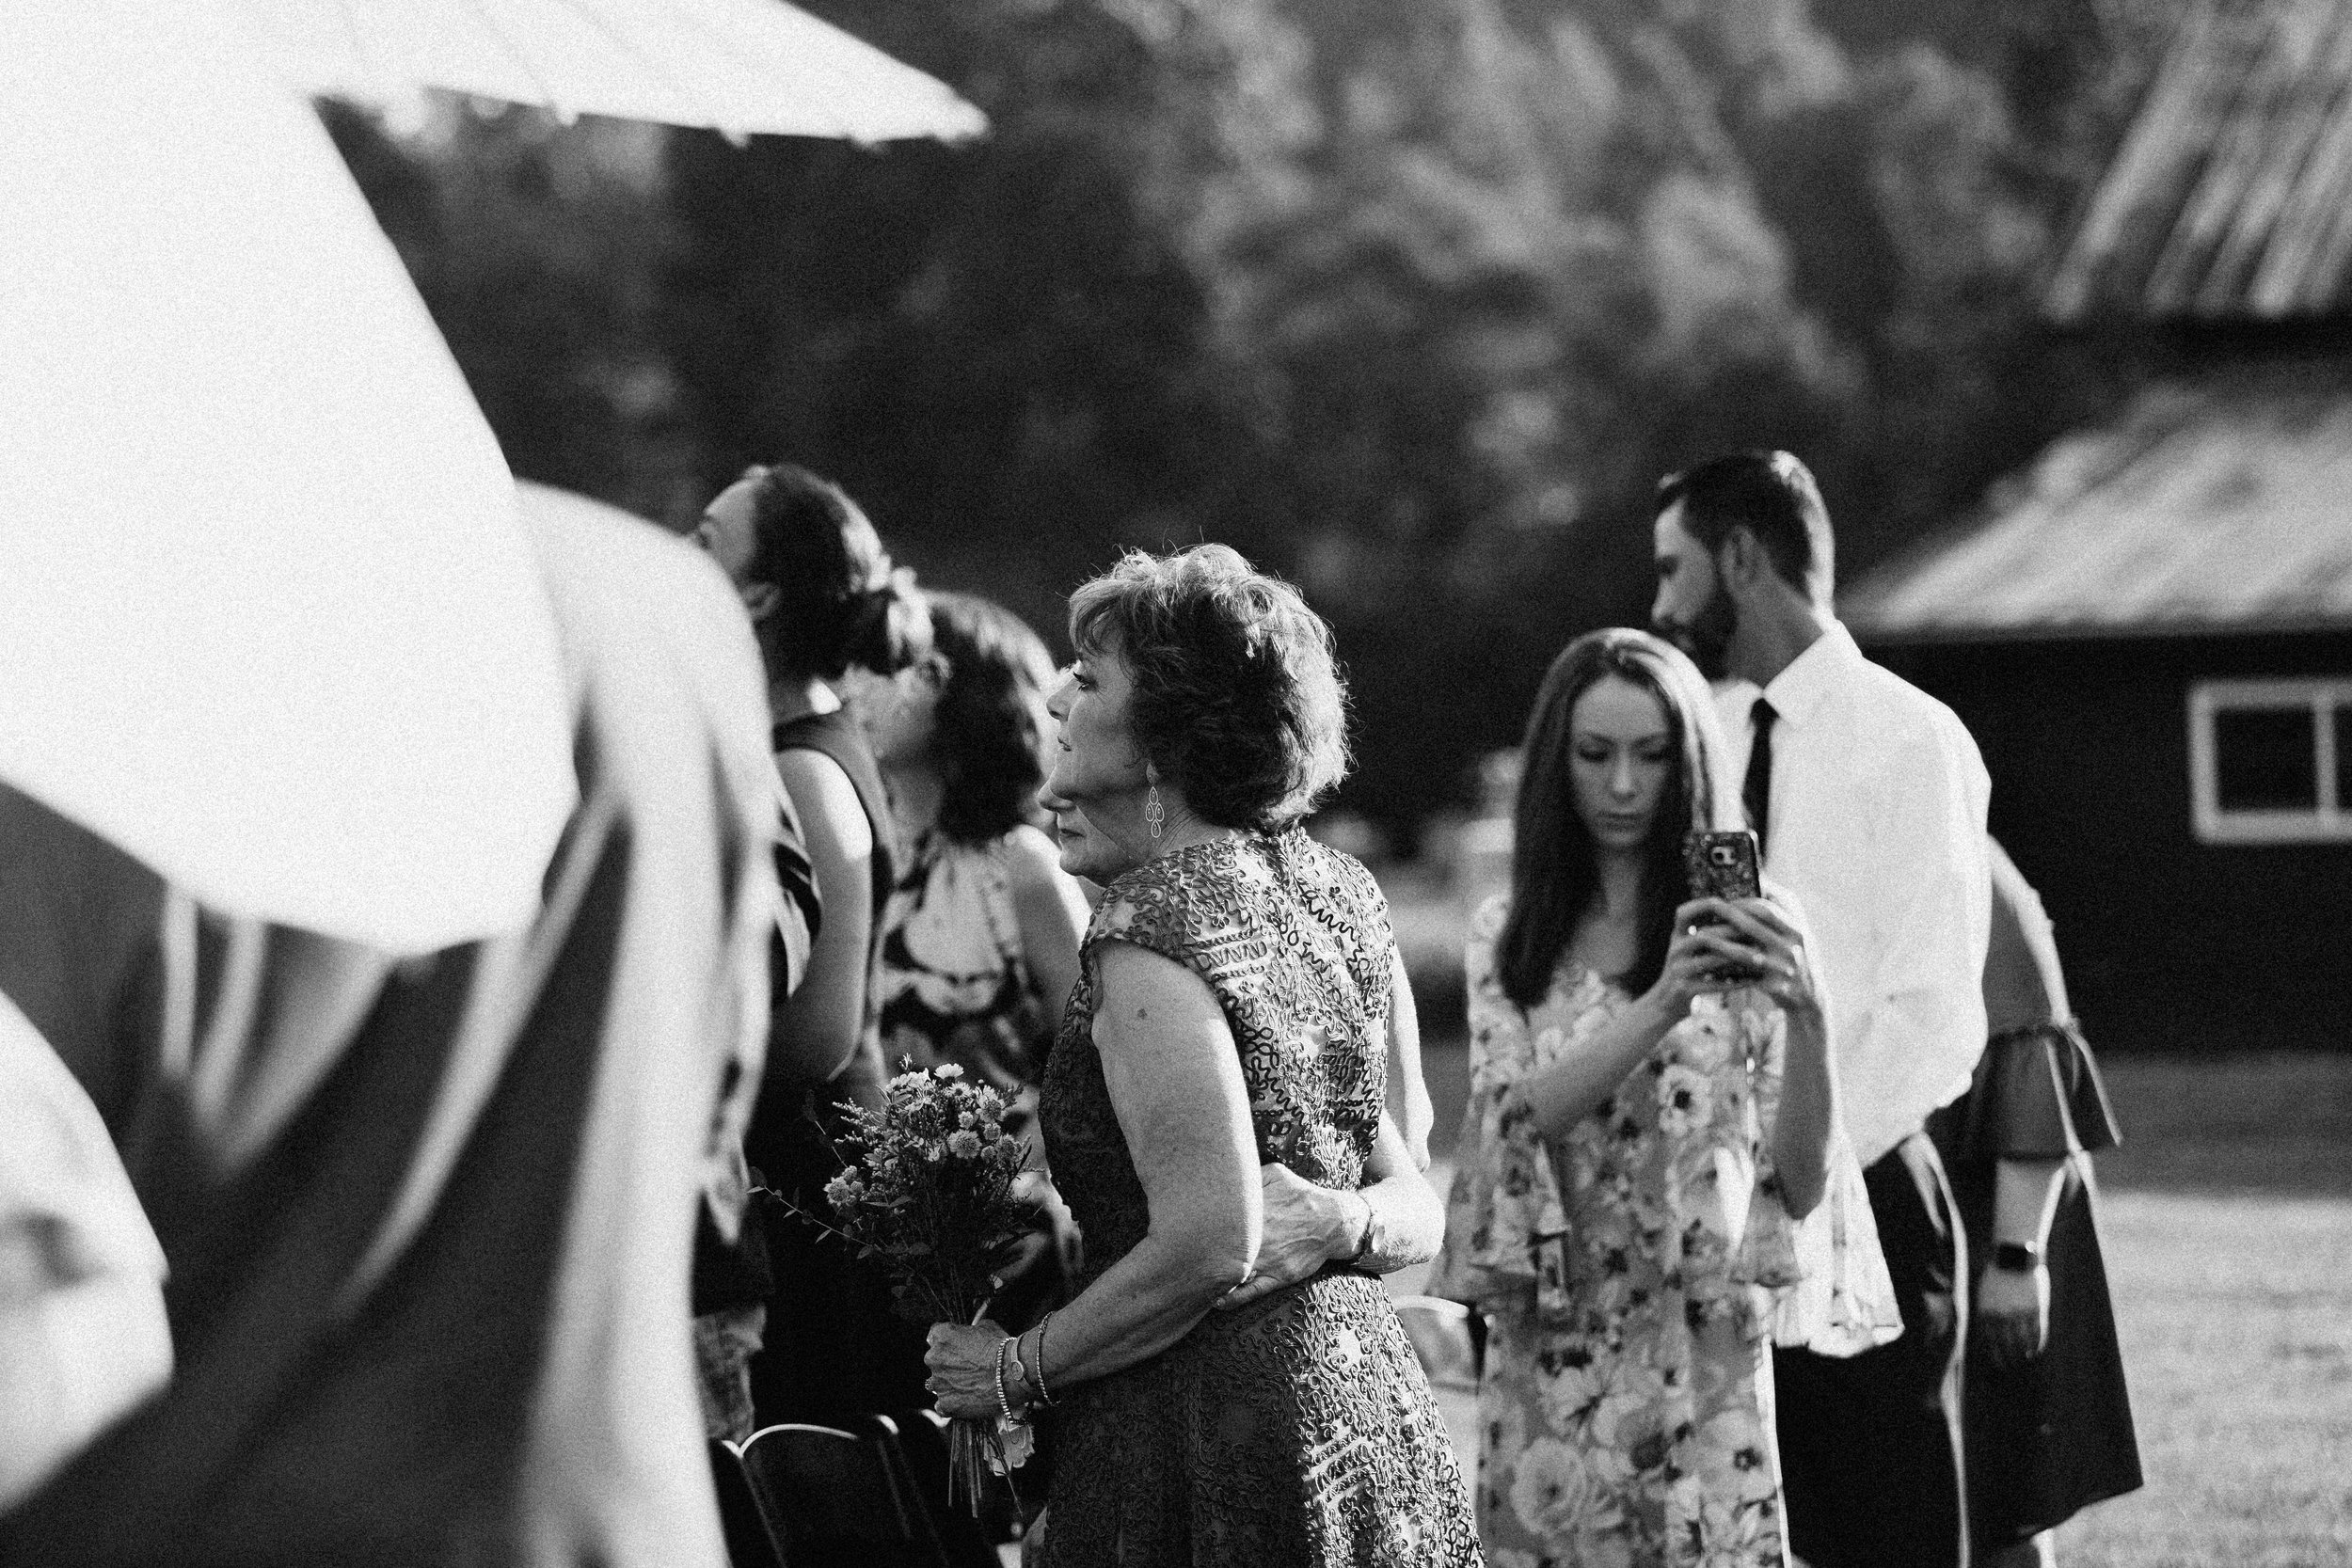 cleveland_georgia_mountain_laurel_farm_natural_classic_timeless_documentary_candid_wedding_emotional_photojournalism_river_west_1635.jpg